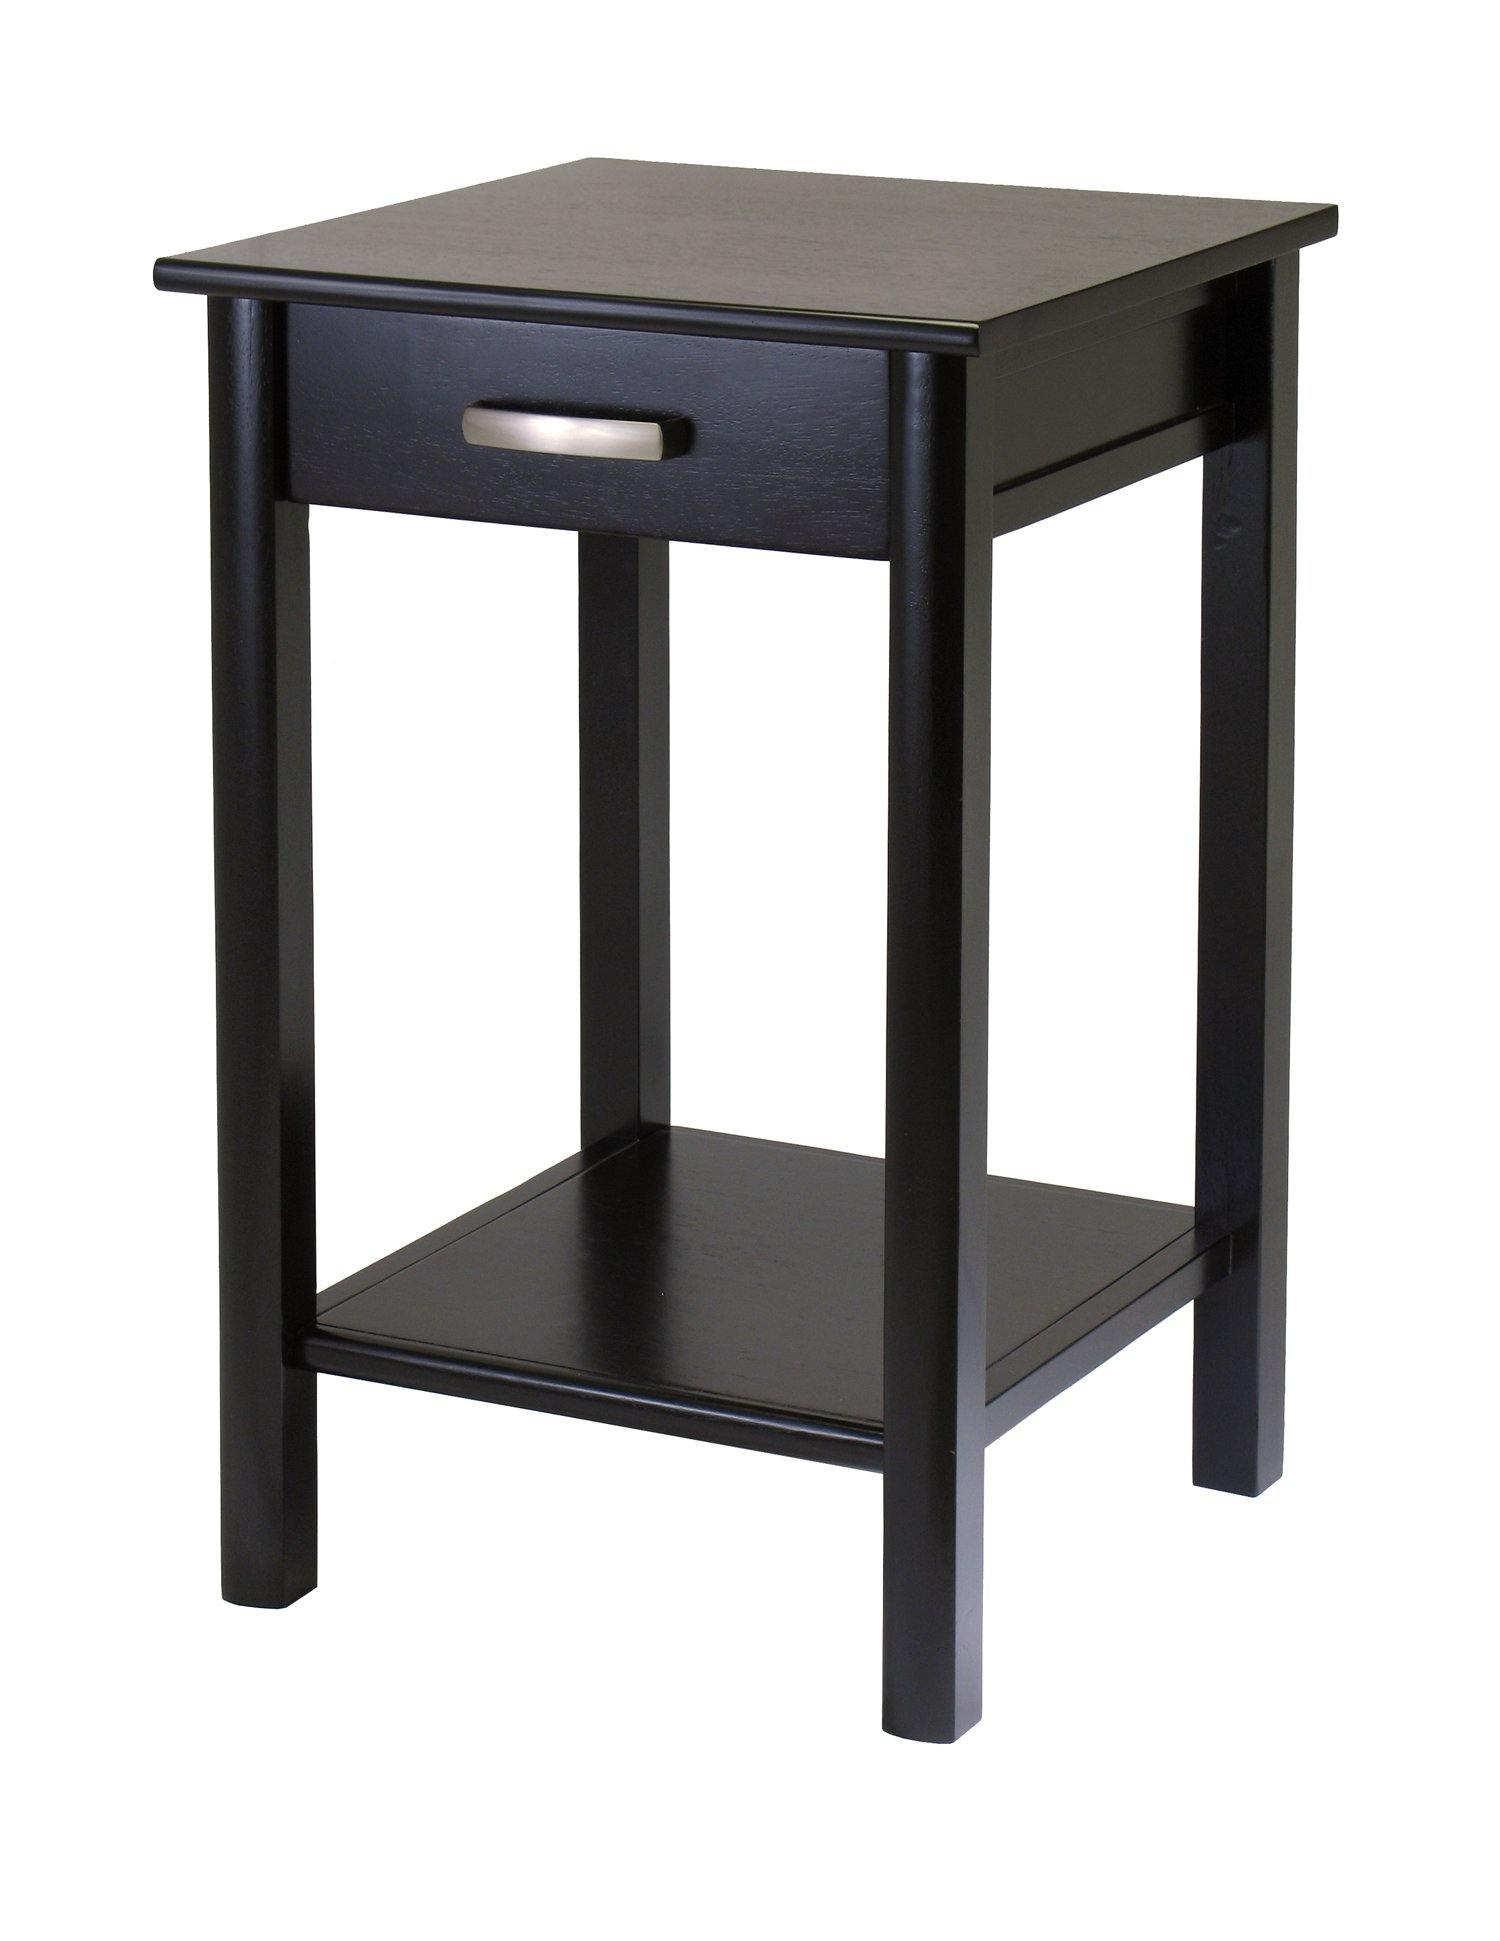 Liso End Table / Printer Table with Drawer and Shelf - My USA Furniture